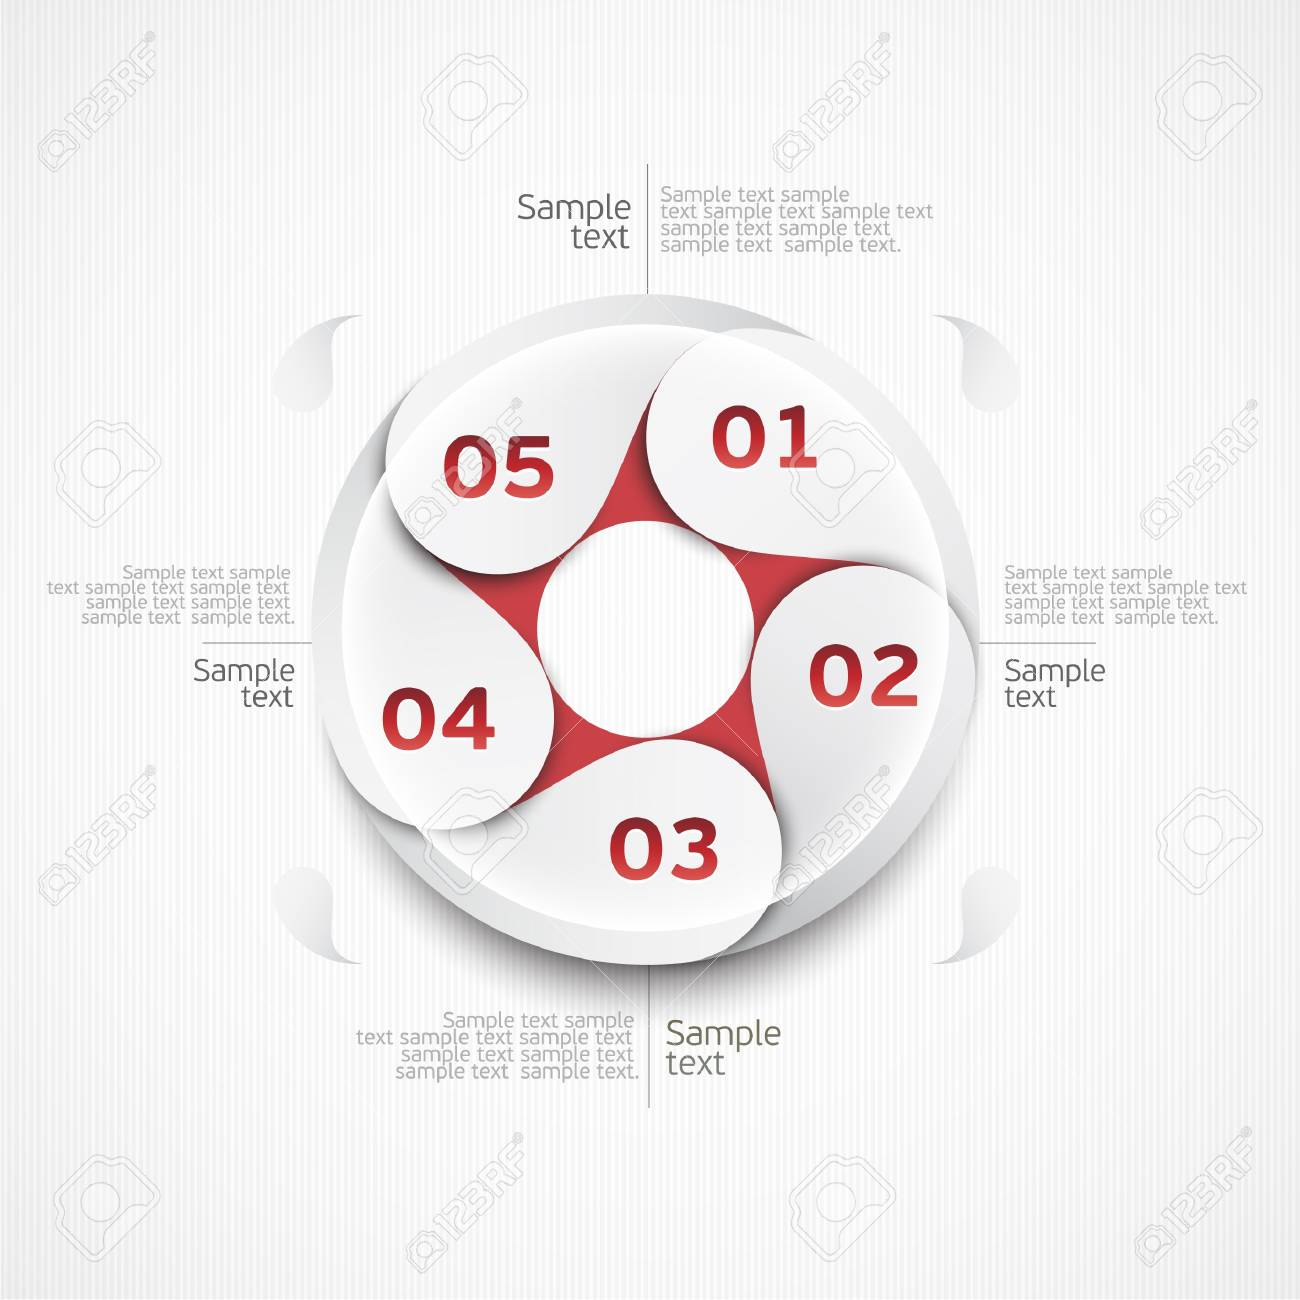 Design circle Stock Vector - 19023408